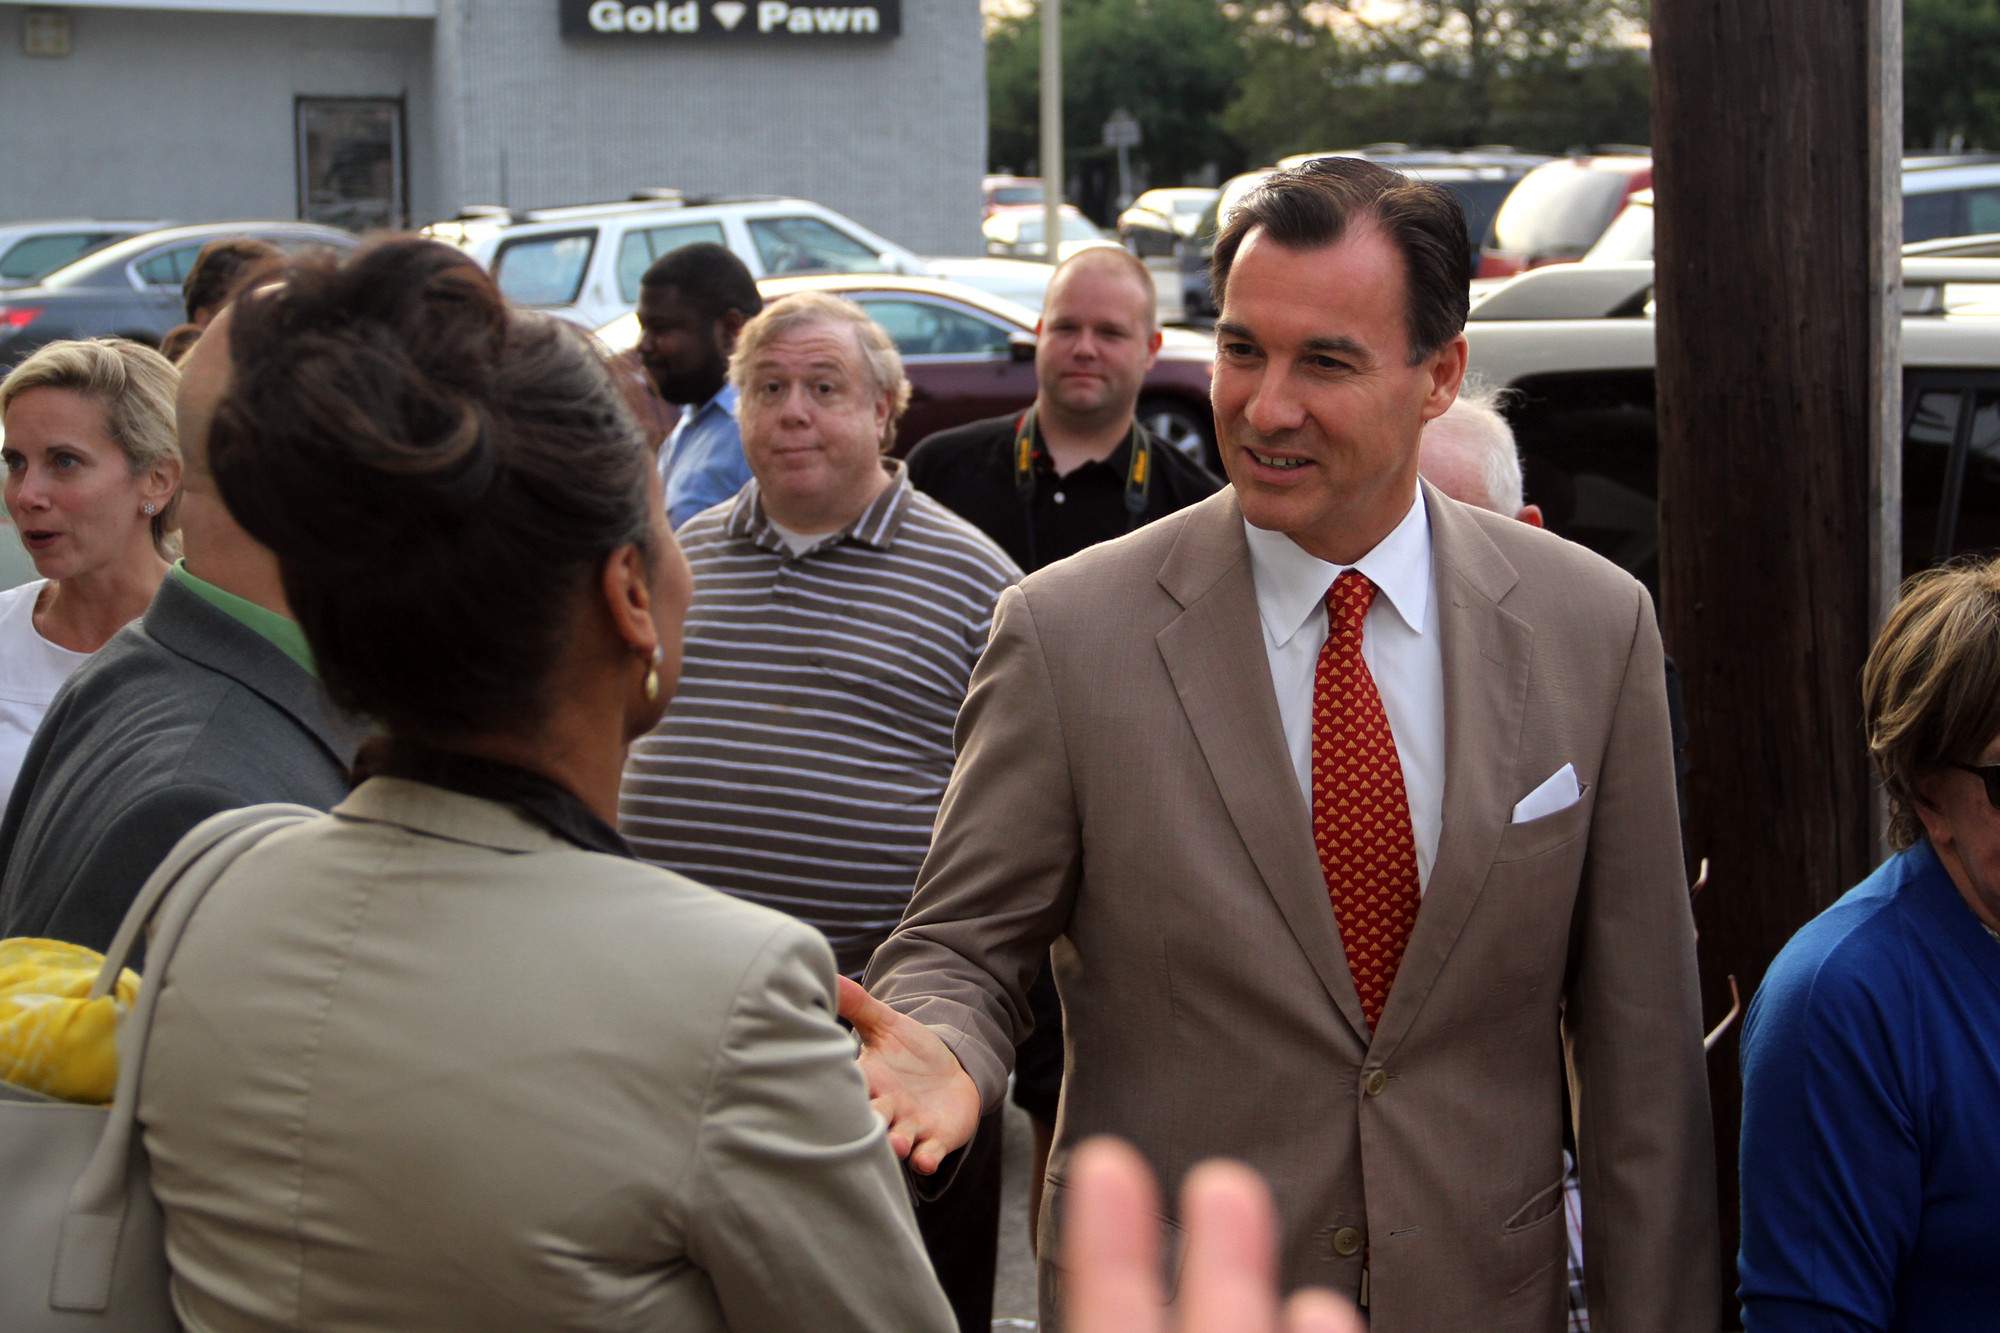 County Executive candidate Tom Suozzi greeted supporters at the opening of a campaign office in Valley Stream on July 31.